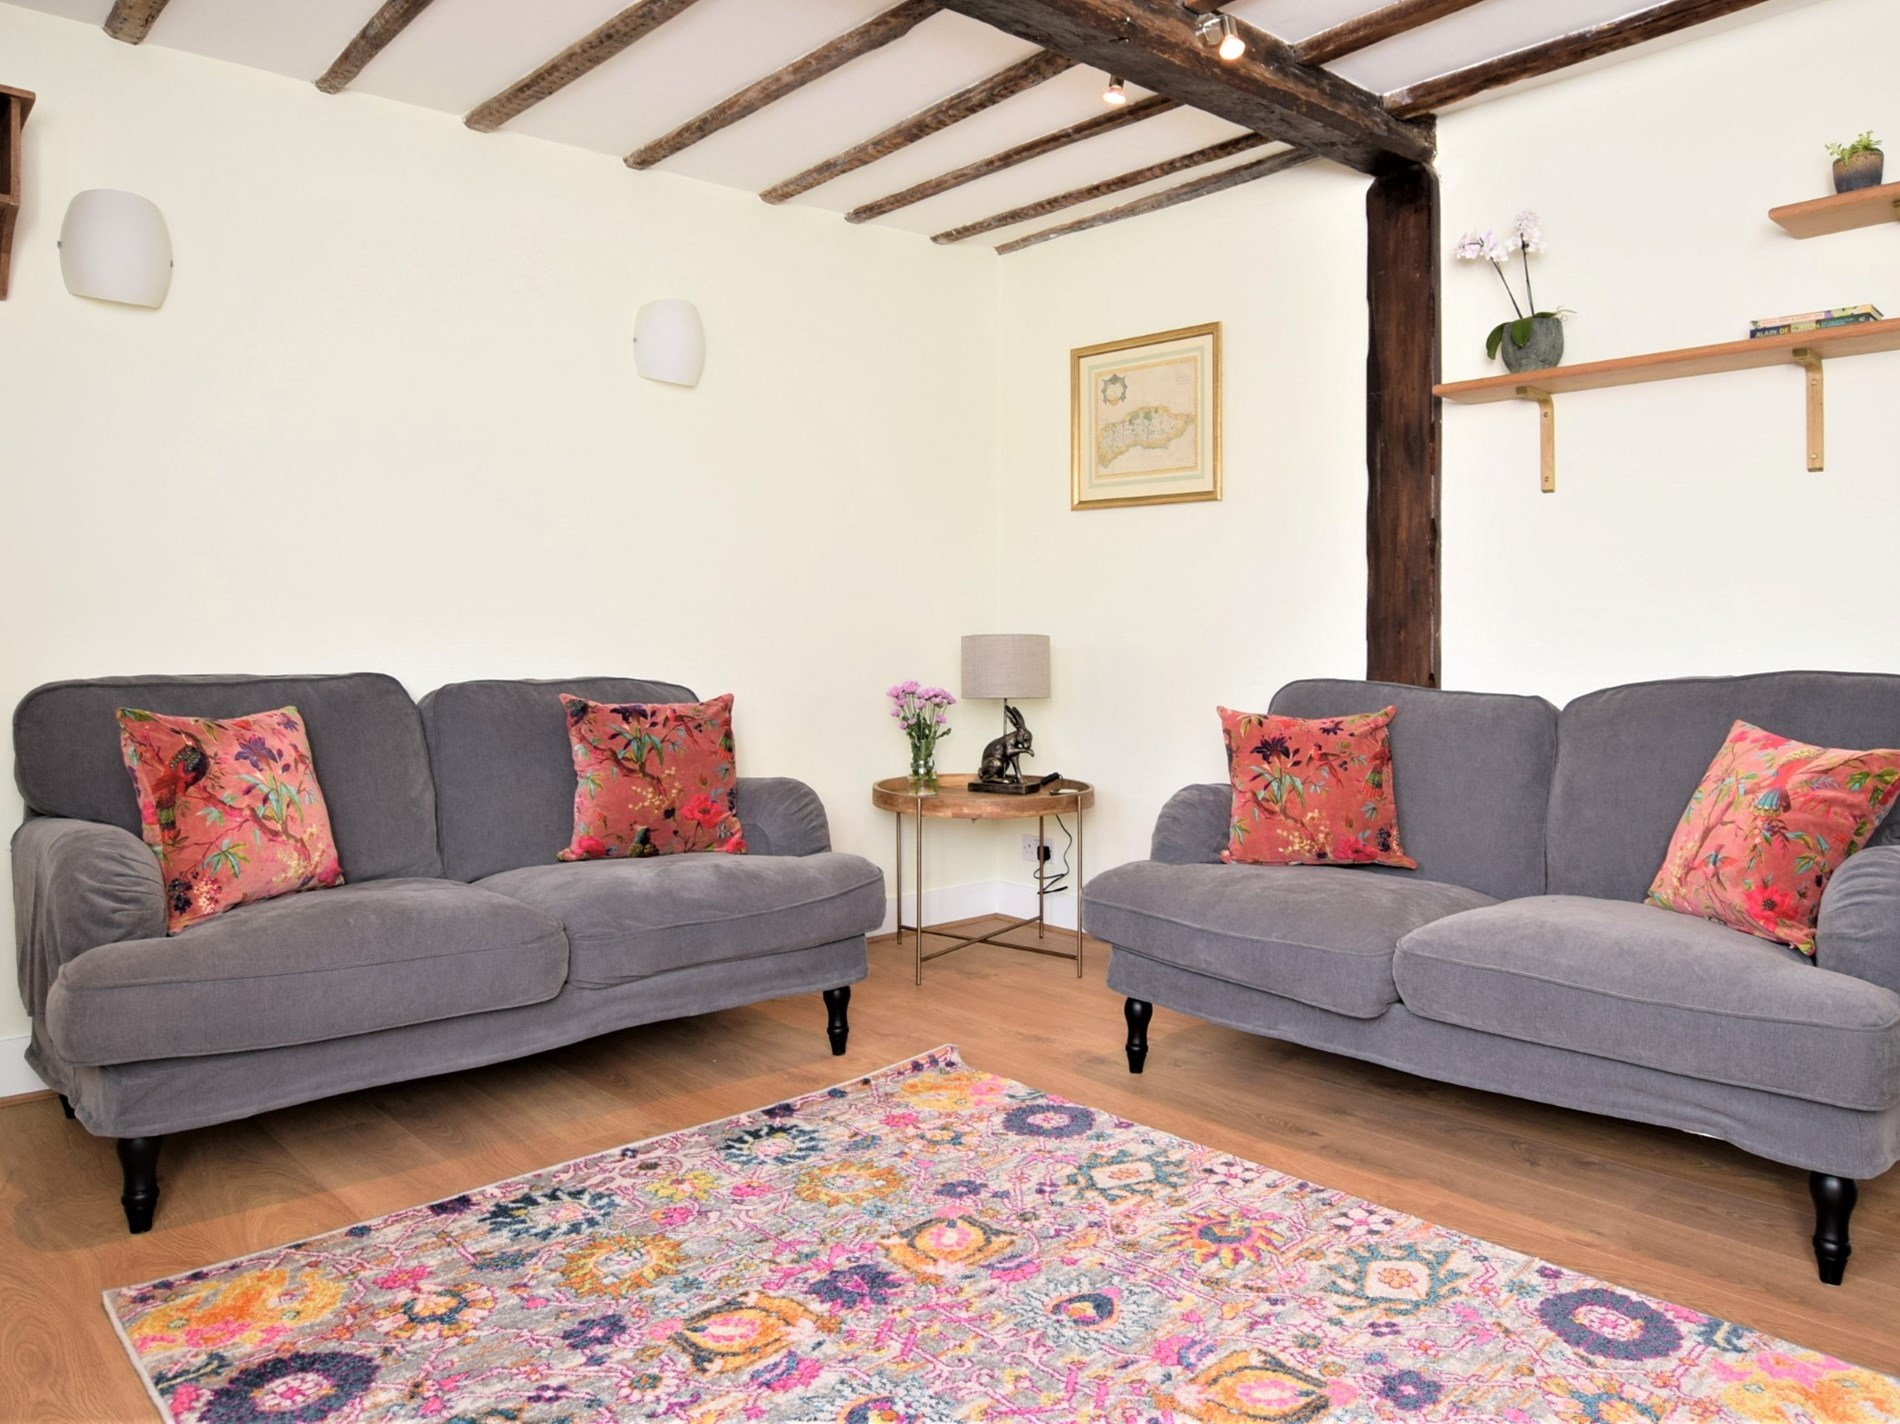 2 Bedroom Cottage in Sussex, South of England